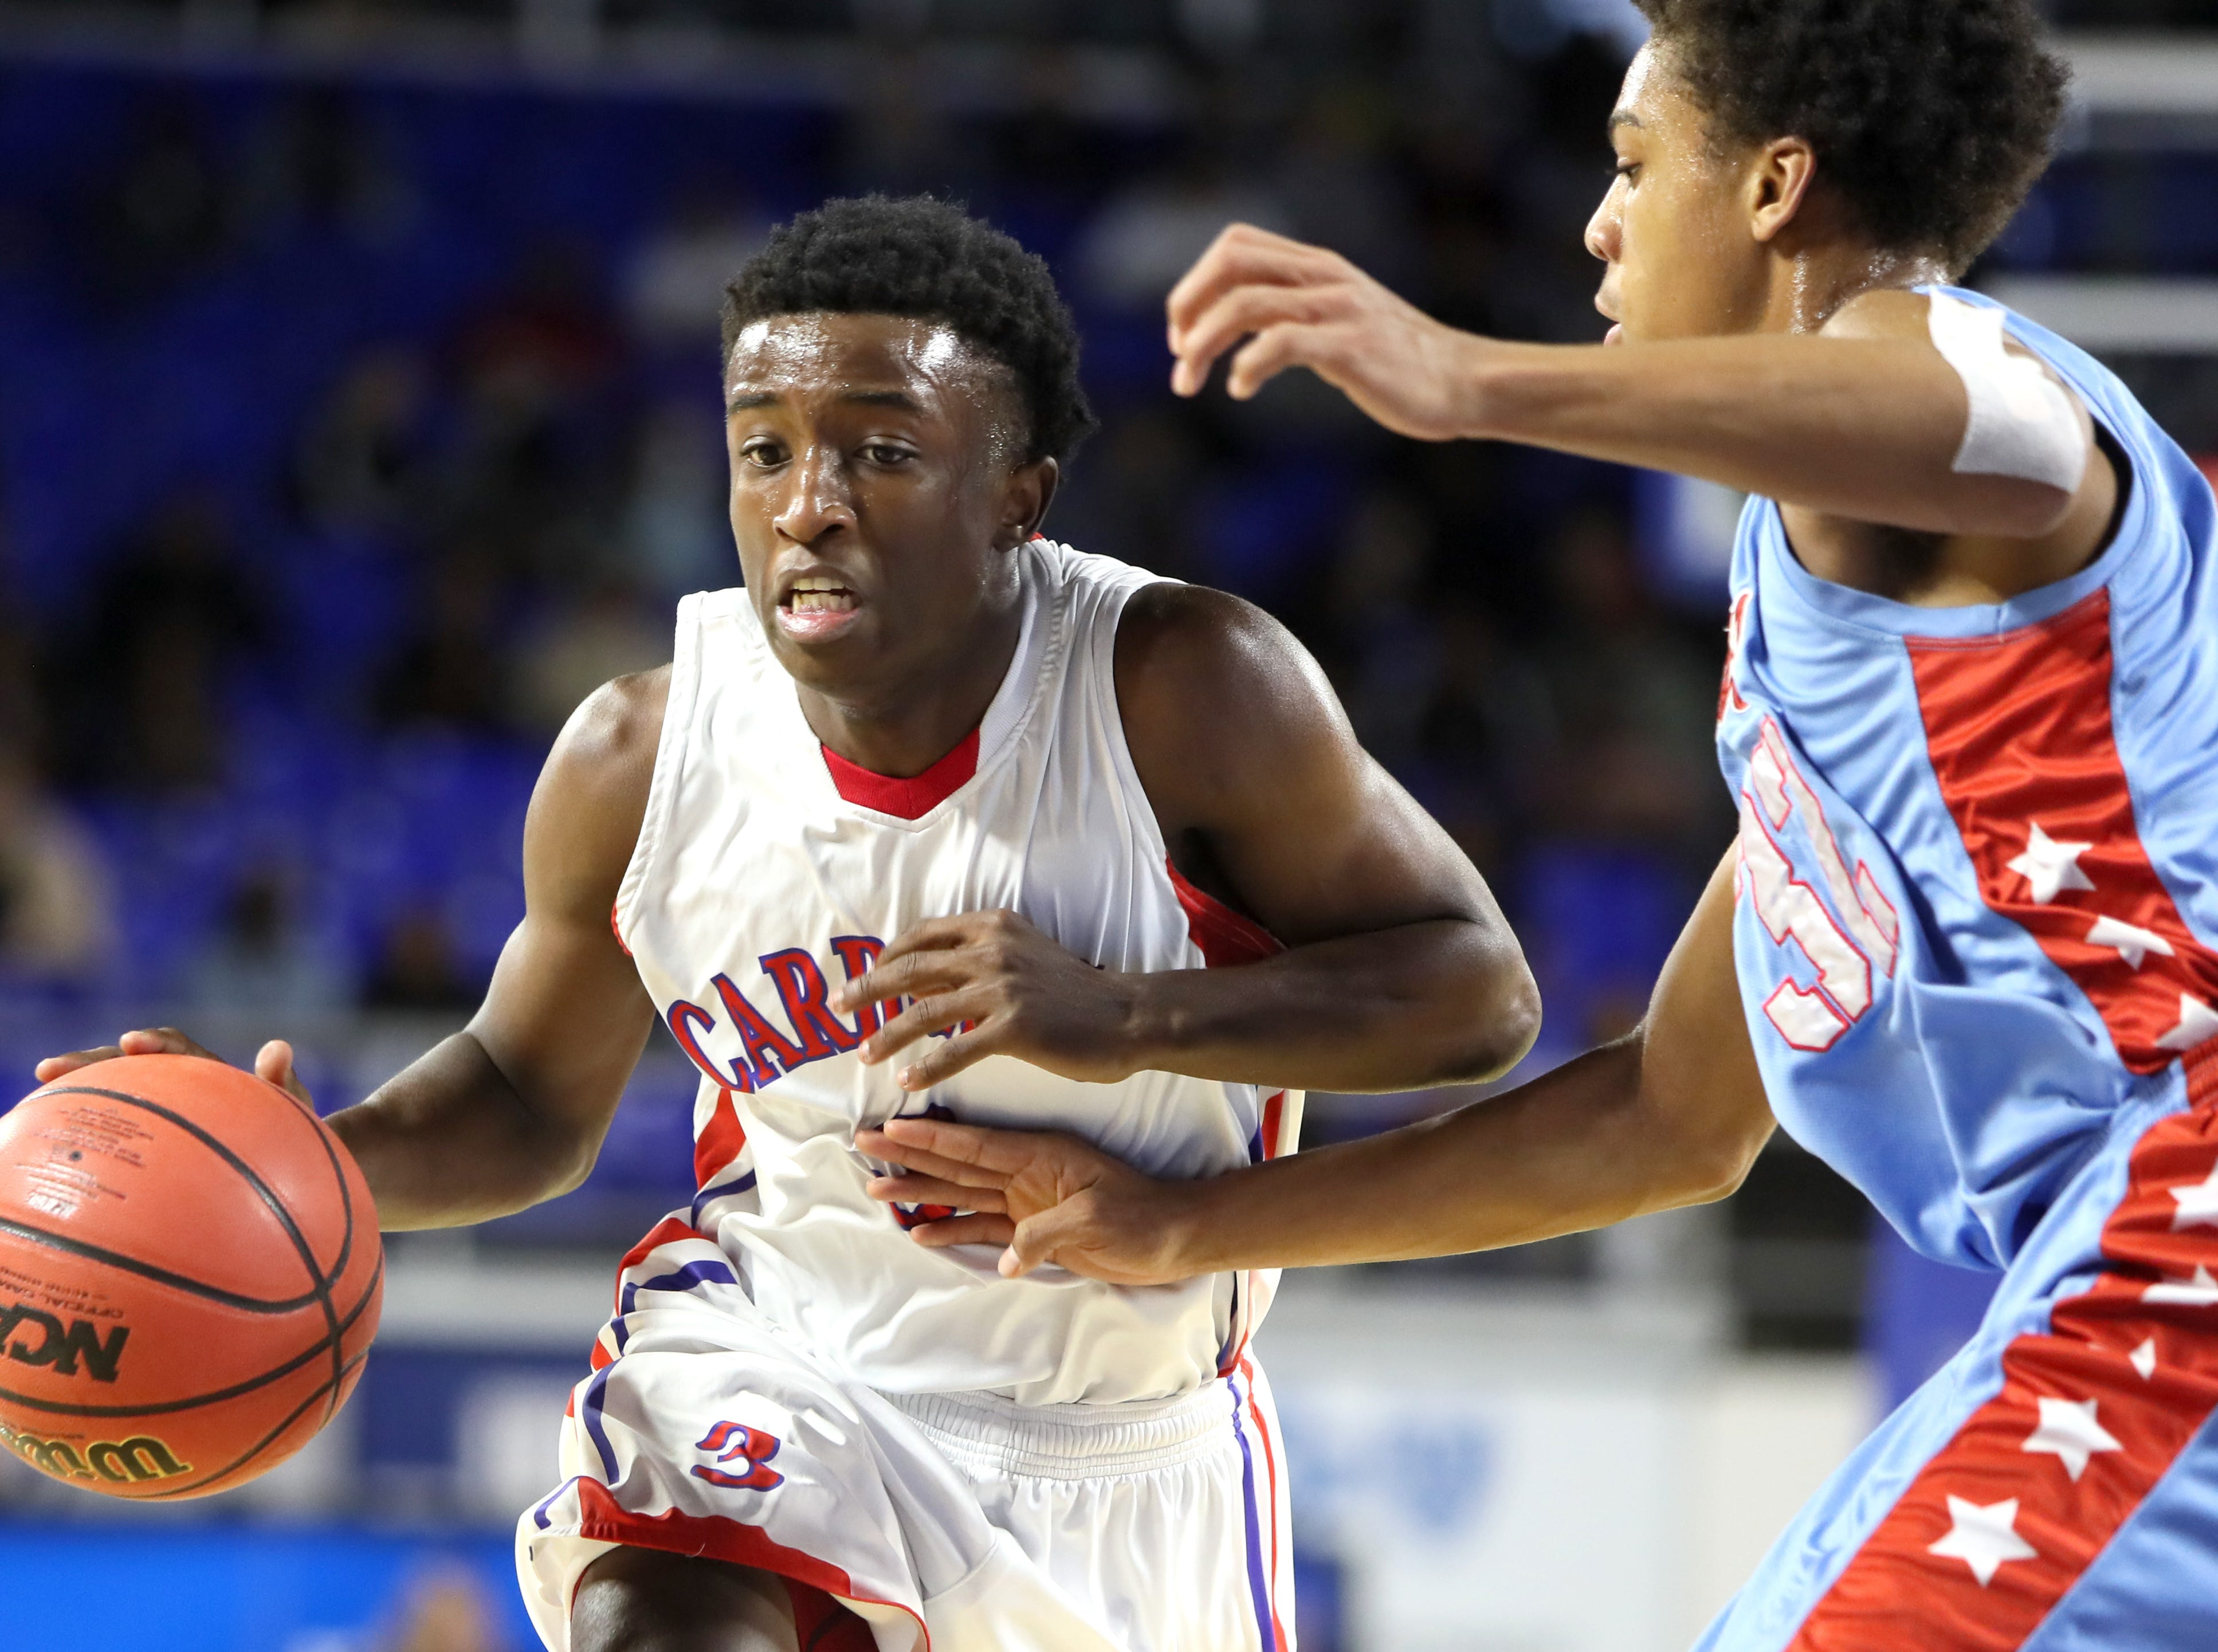 Wooddale's Alvin Miles drives past Brainerd's Cameron Evans during the Class AA boys basketball state semifinal at the Murphy Center in Murfreesboro, Tenn. on Thursday, March 14, 2019.